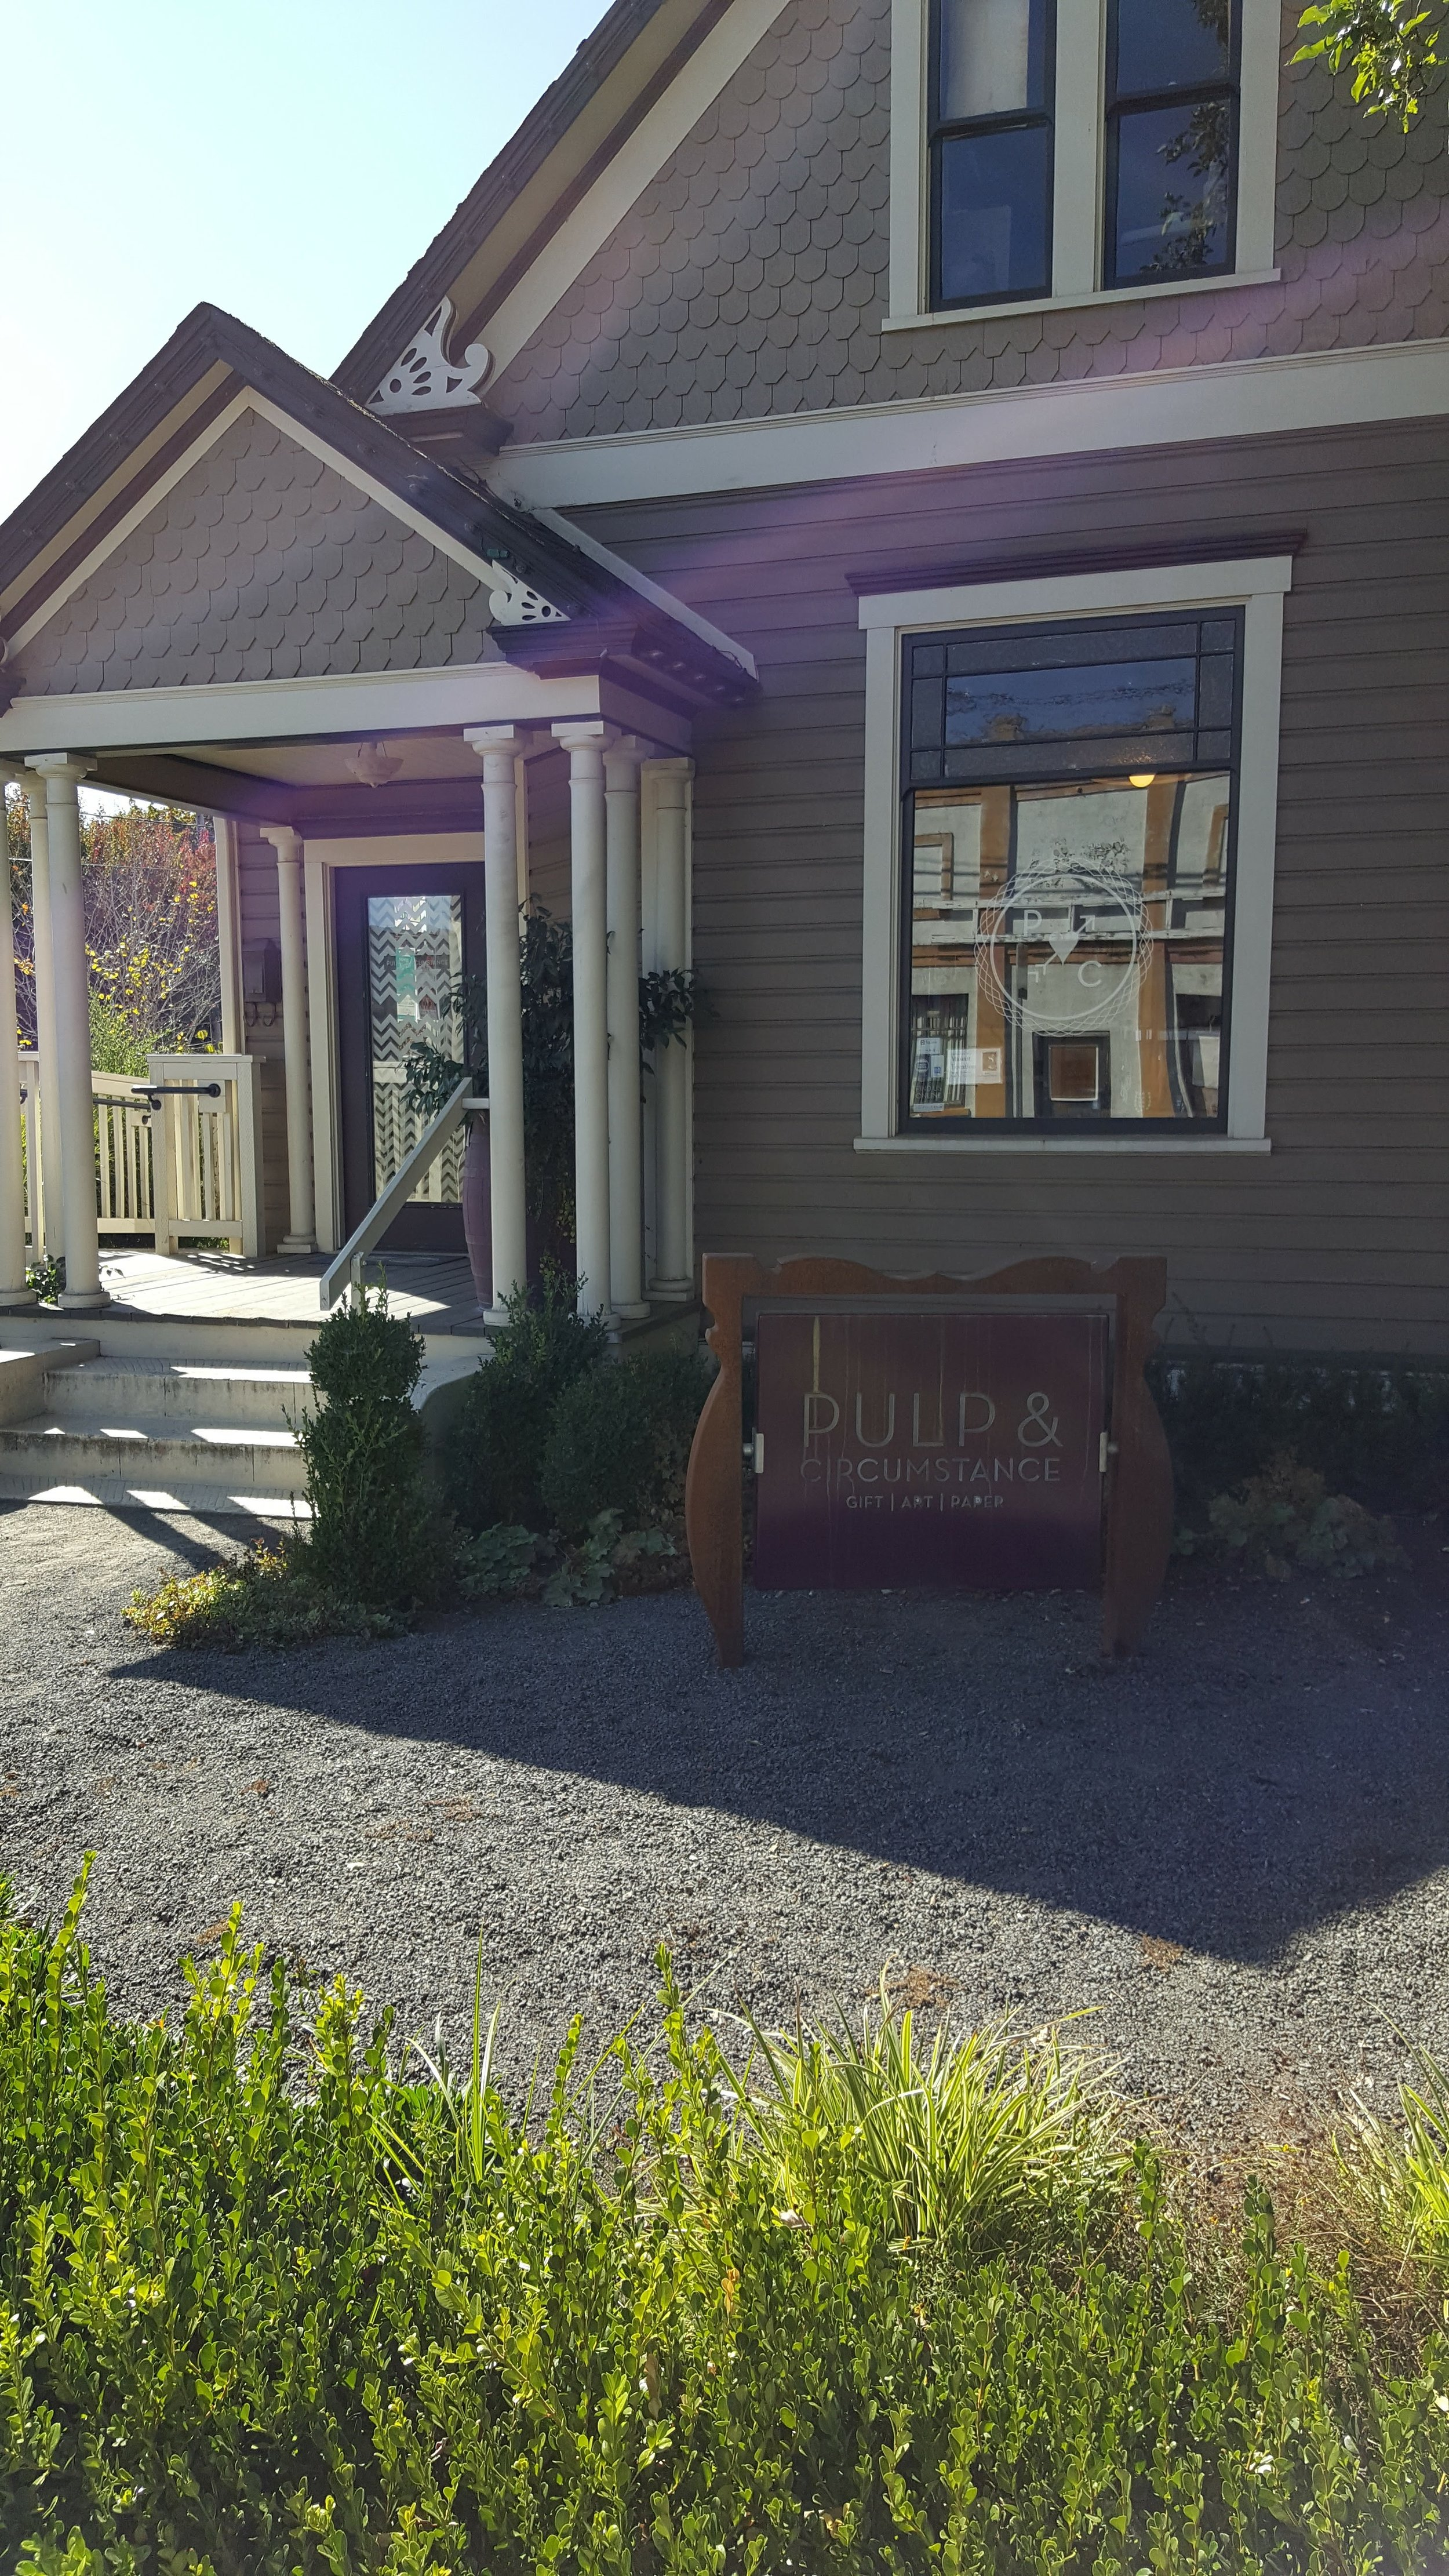 Pulp & Circumstance - Newberg, Oregon - such a clever name with a creative interior to match